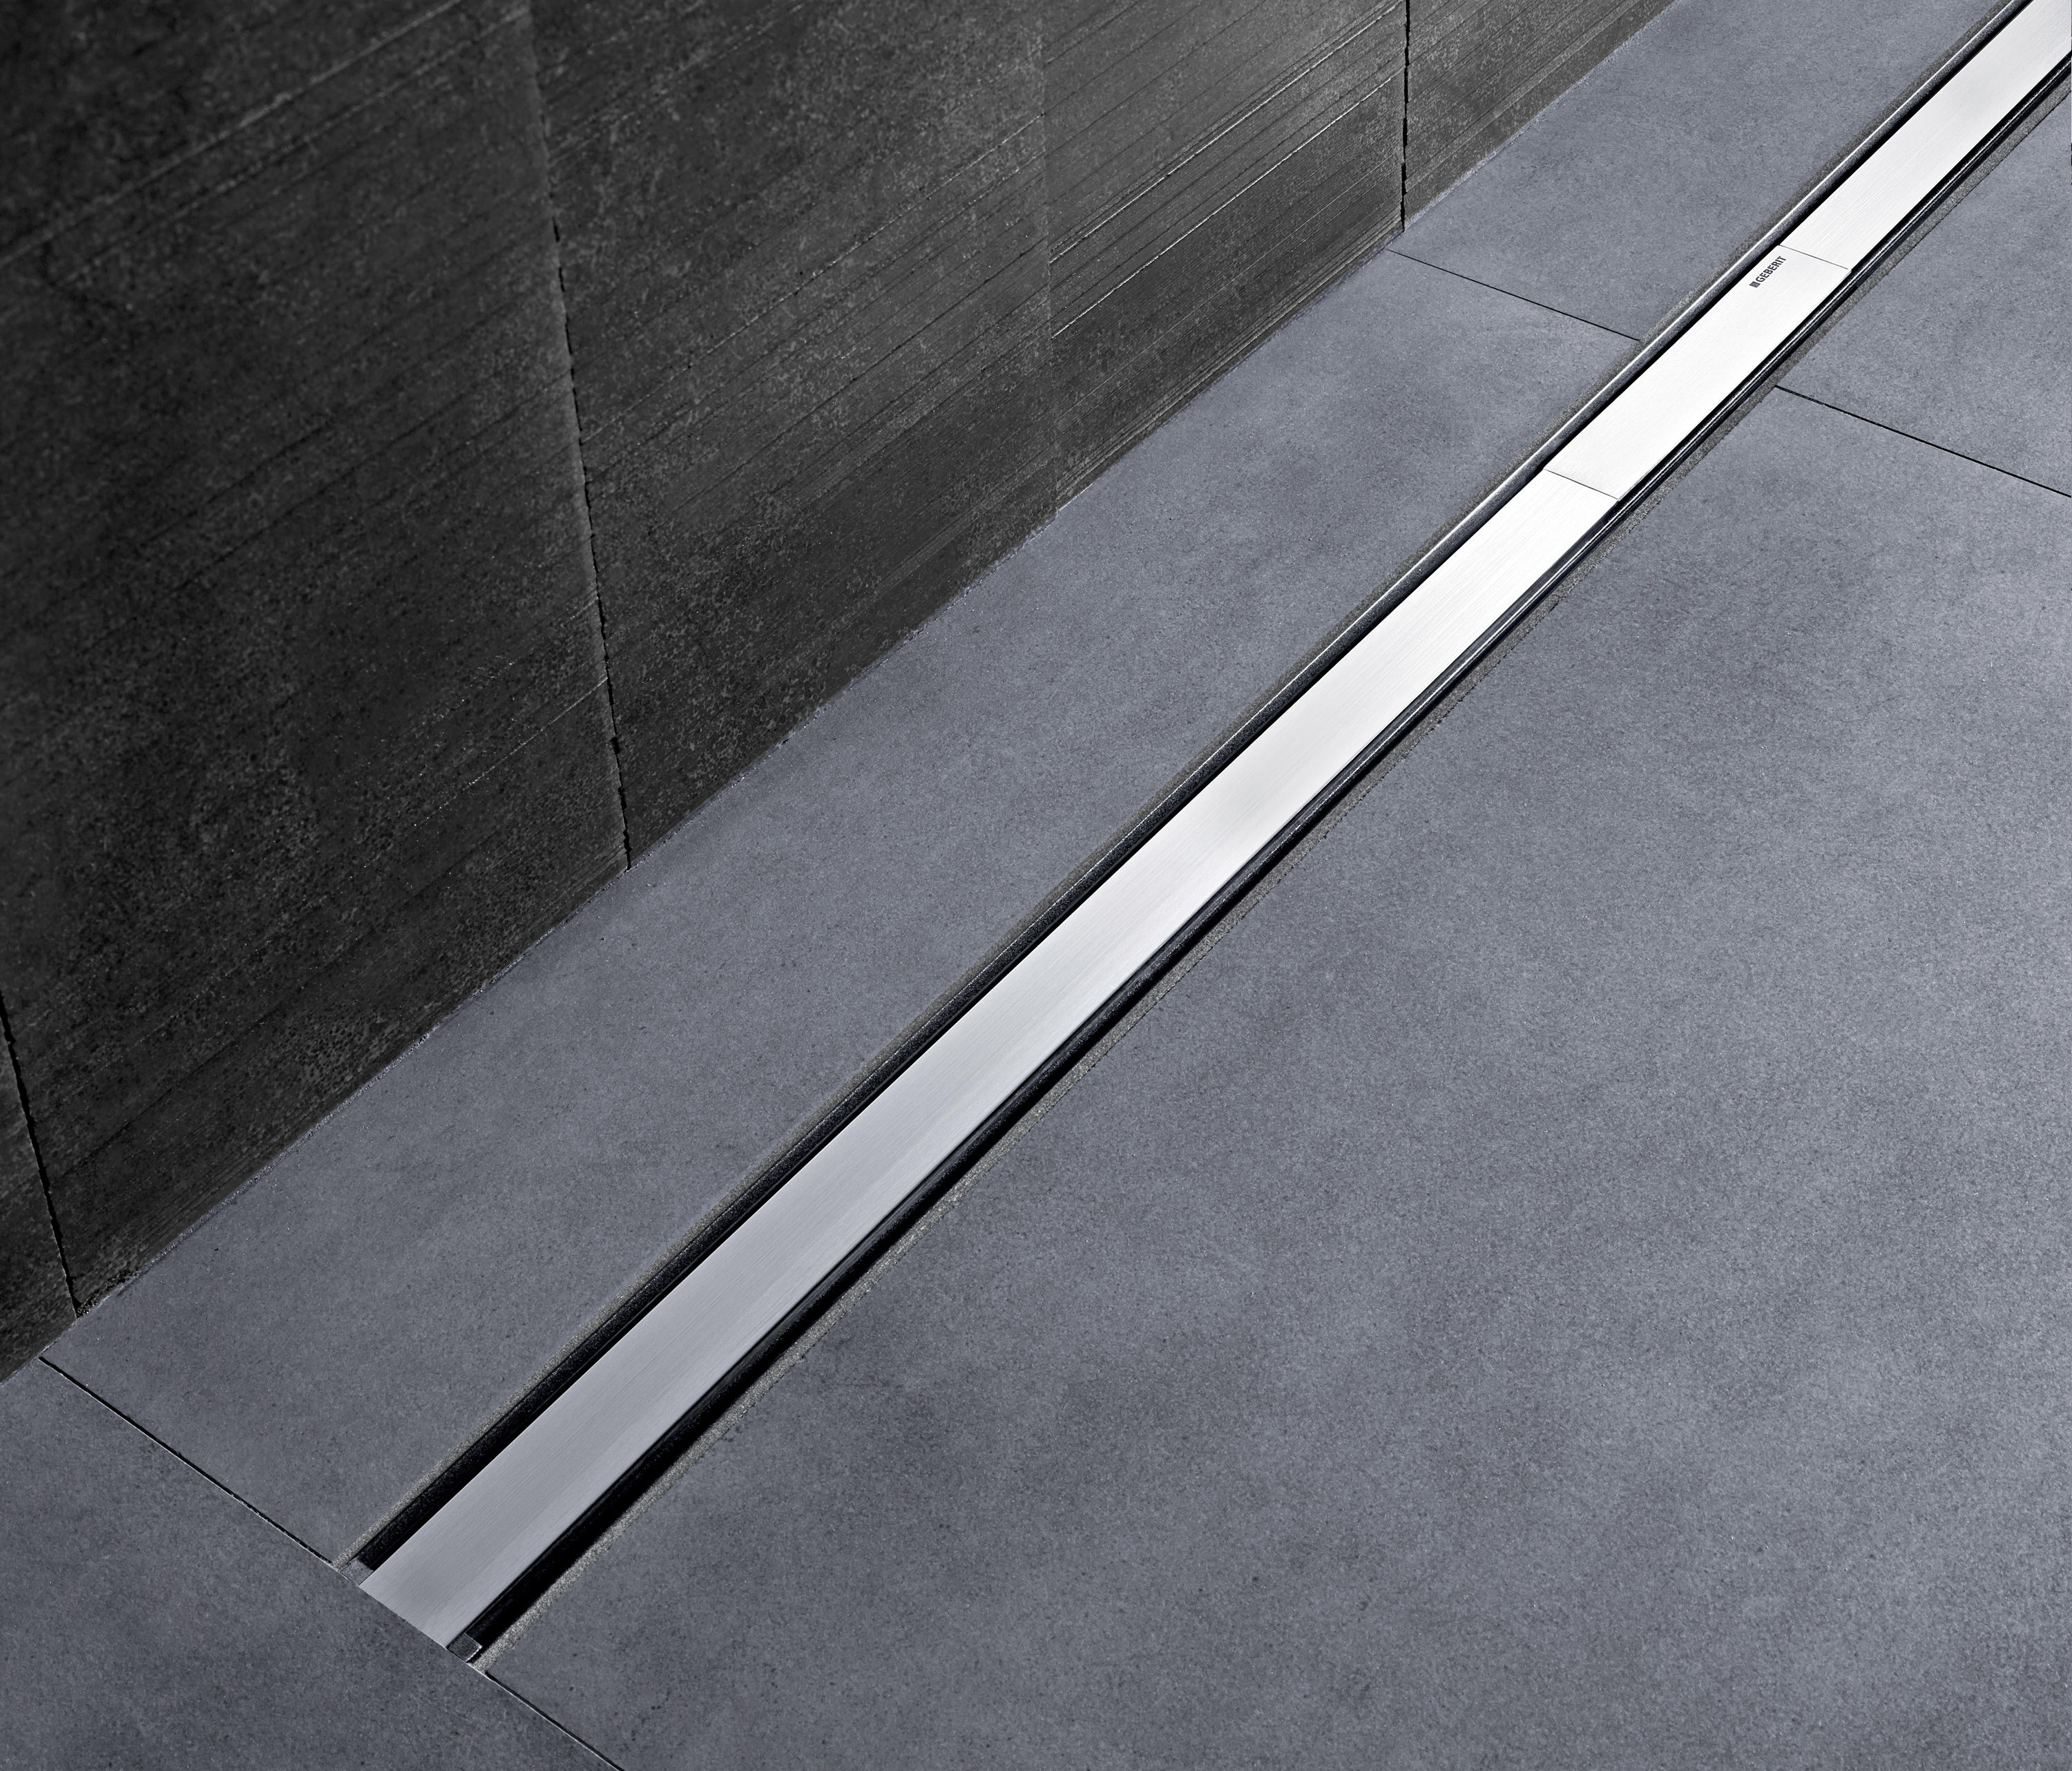 geberit shower channels cleanline linear drains from. Black Bedroom Furniture Sets. Home Design Ideas